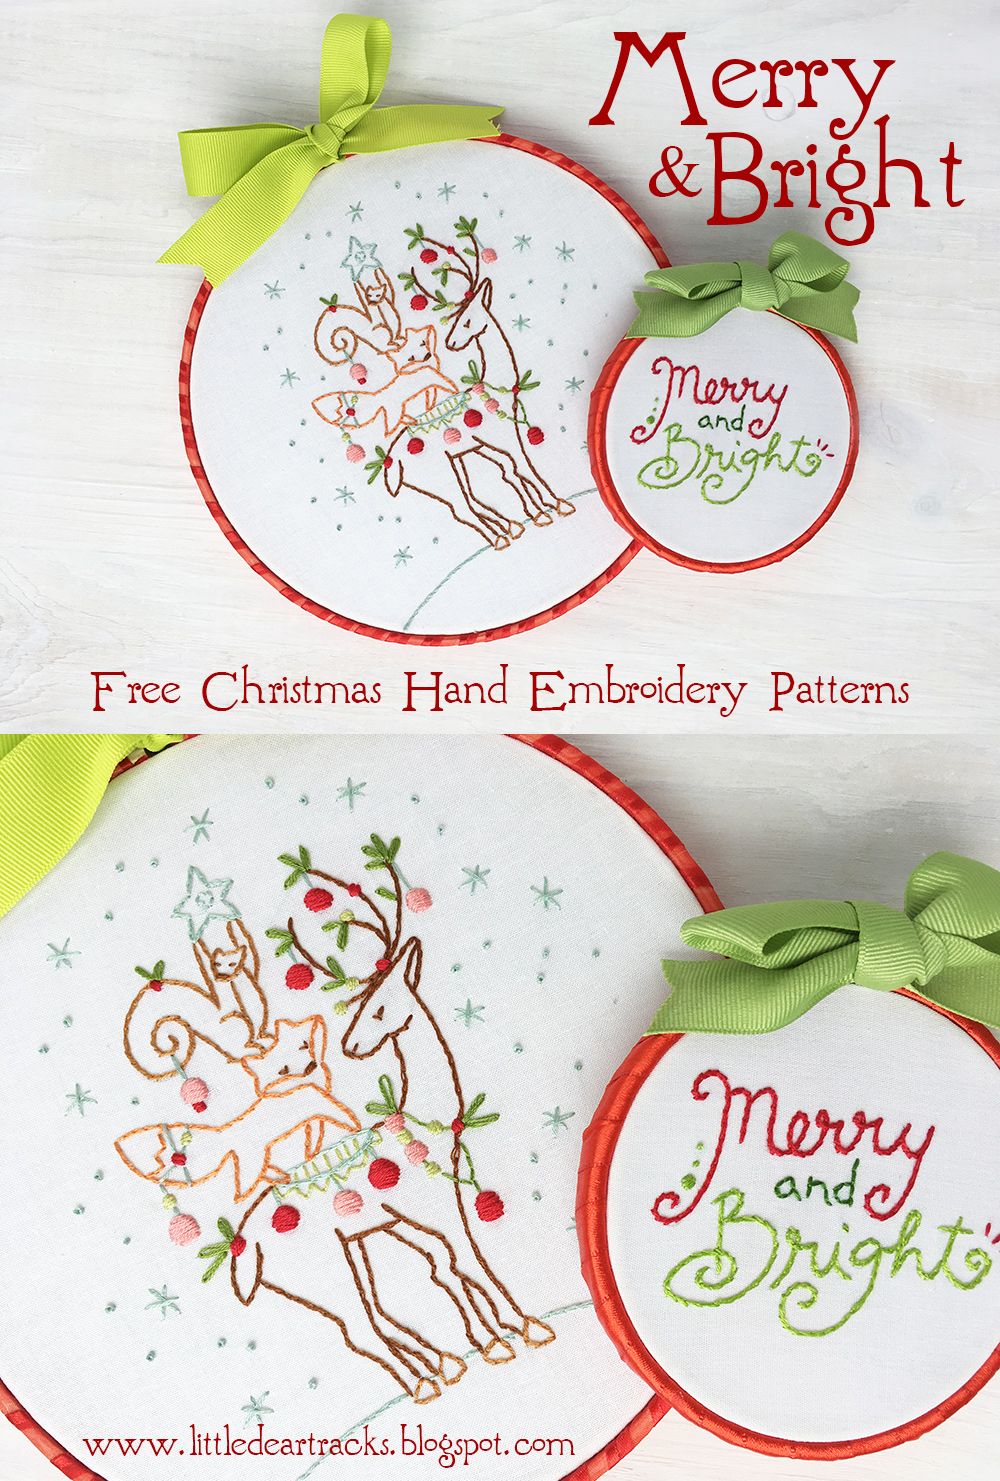 Free Christmas Embroidery Patterns Little Dear Tracks Free Christmas Embroidery Patterns